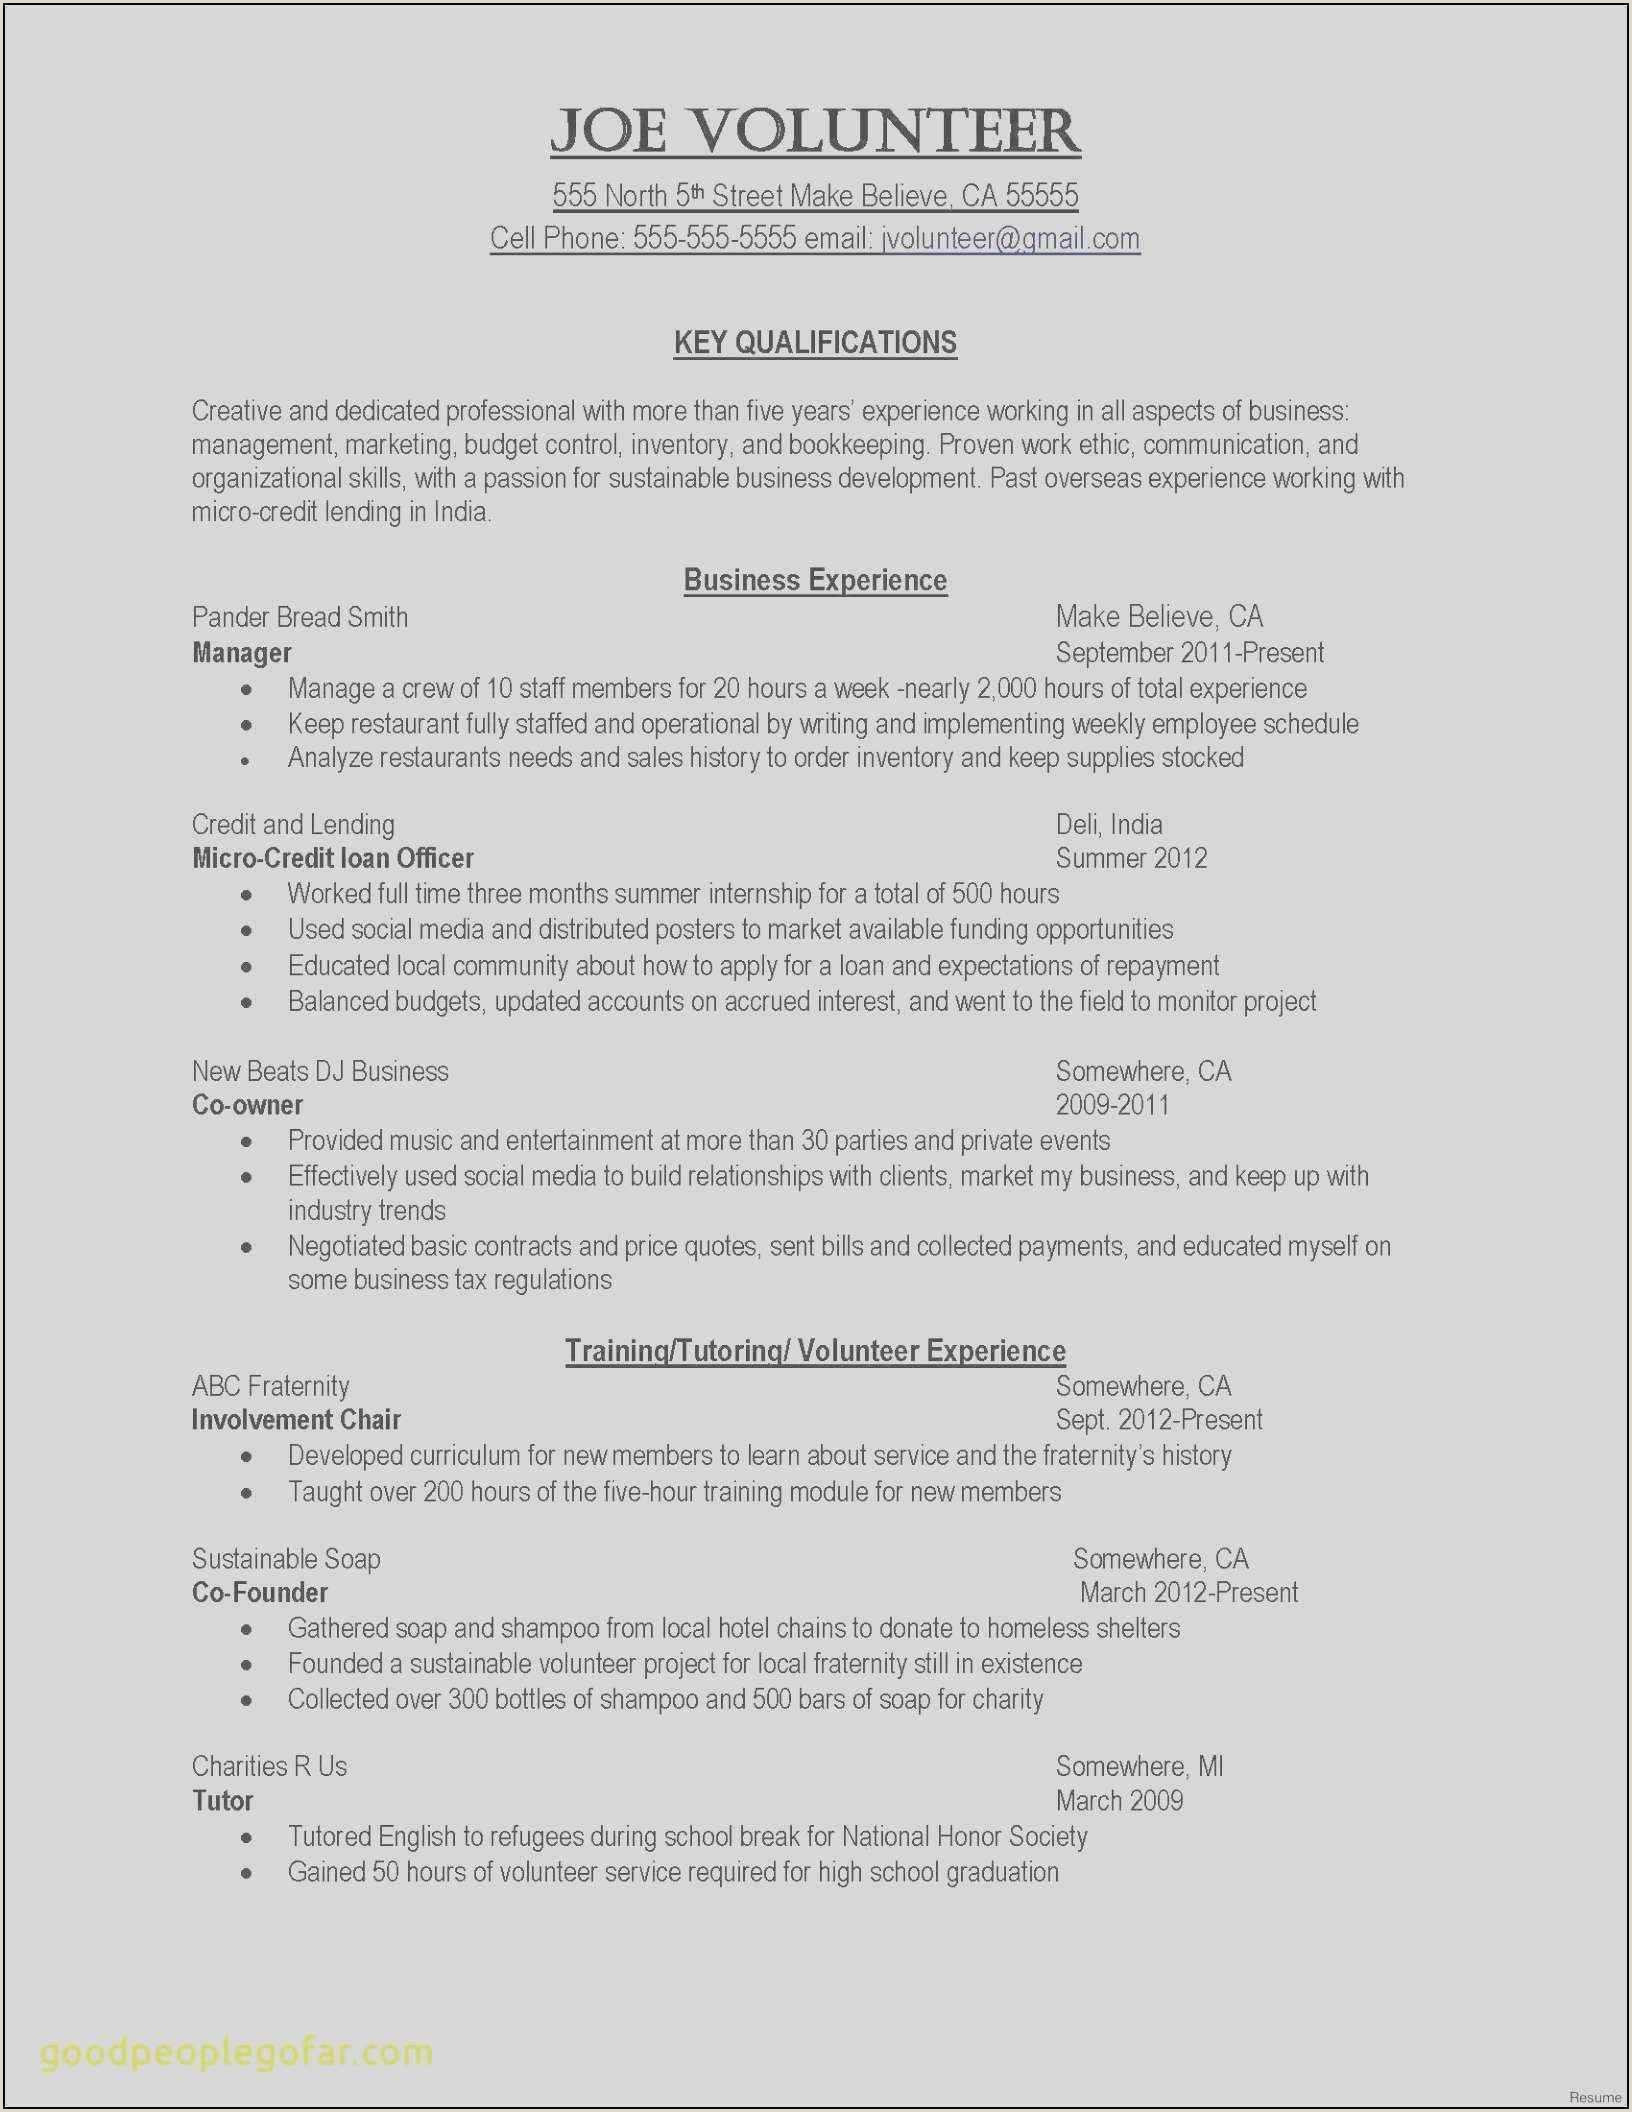 Letter Of Credit Resume Cover Letter International Experience Sample Awesome Fresh